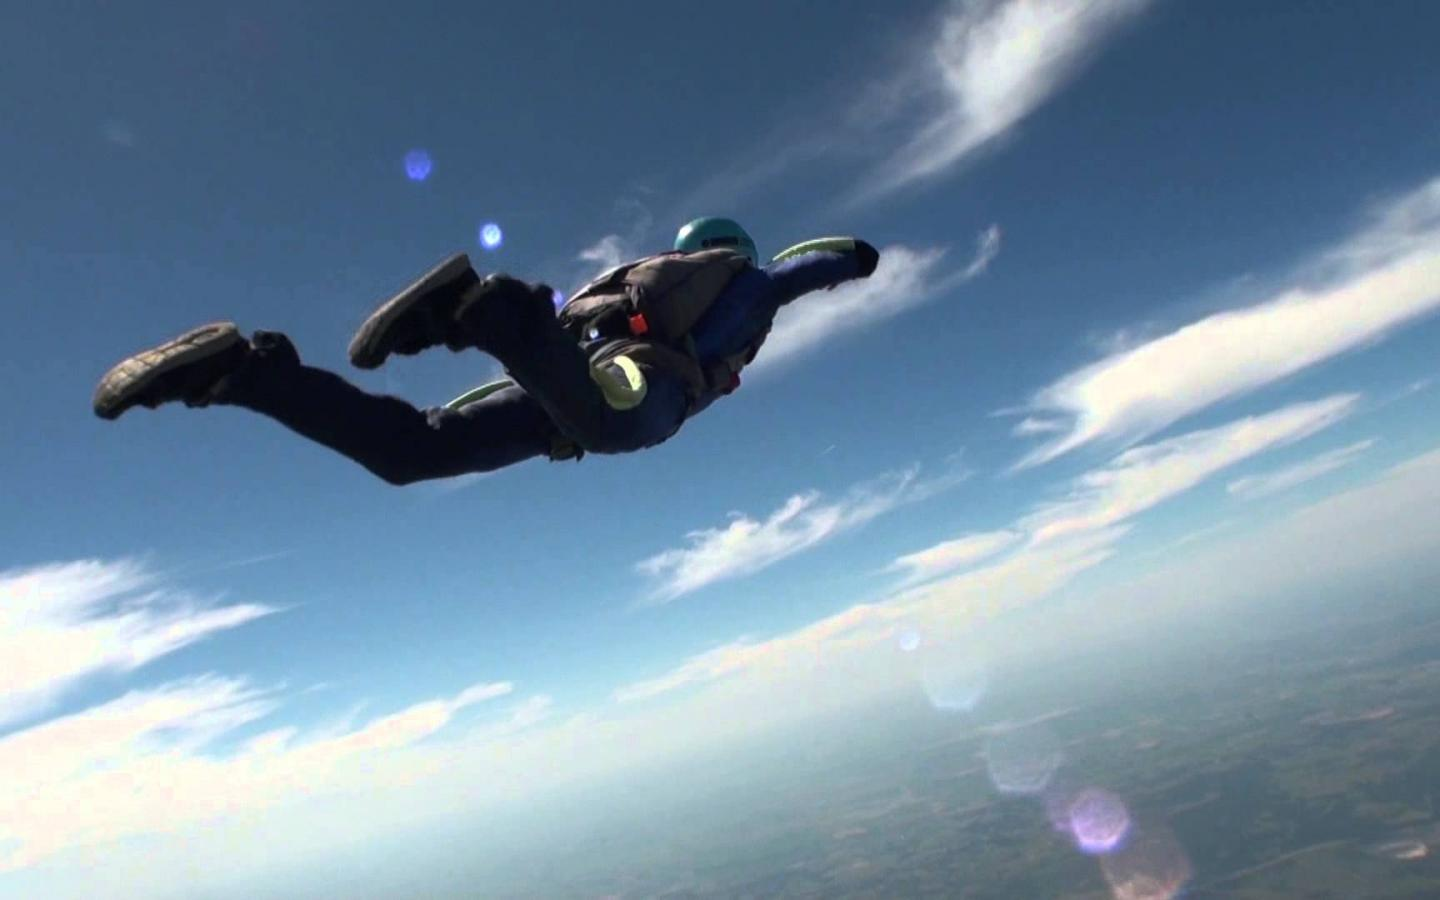 1440x900 - Skydiving Wallpapers 24